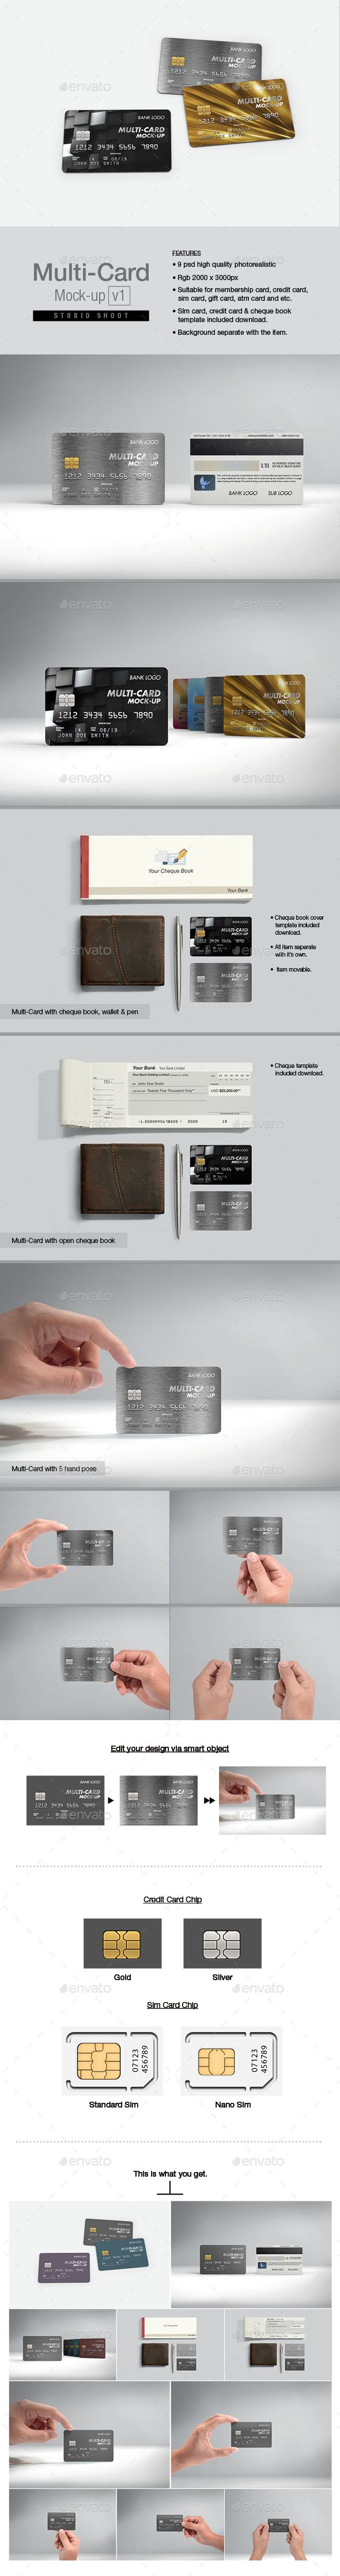 MultiCard Mockup v1 — Photoshop PSD #symbolic #sim card • Available here → https://graphicriver.net/item/multicard-mockup-v1/16636825?ref=pxcr